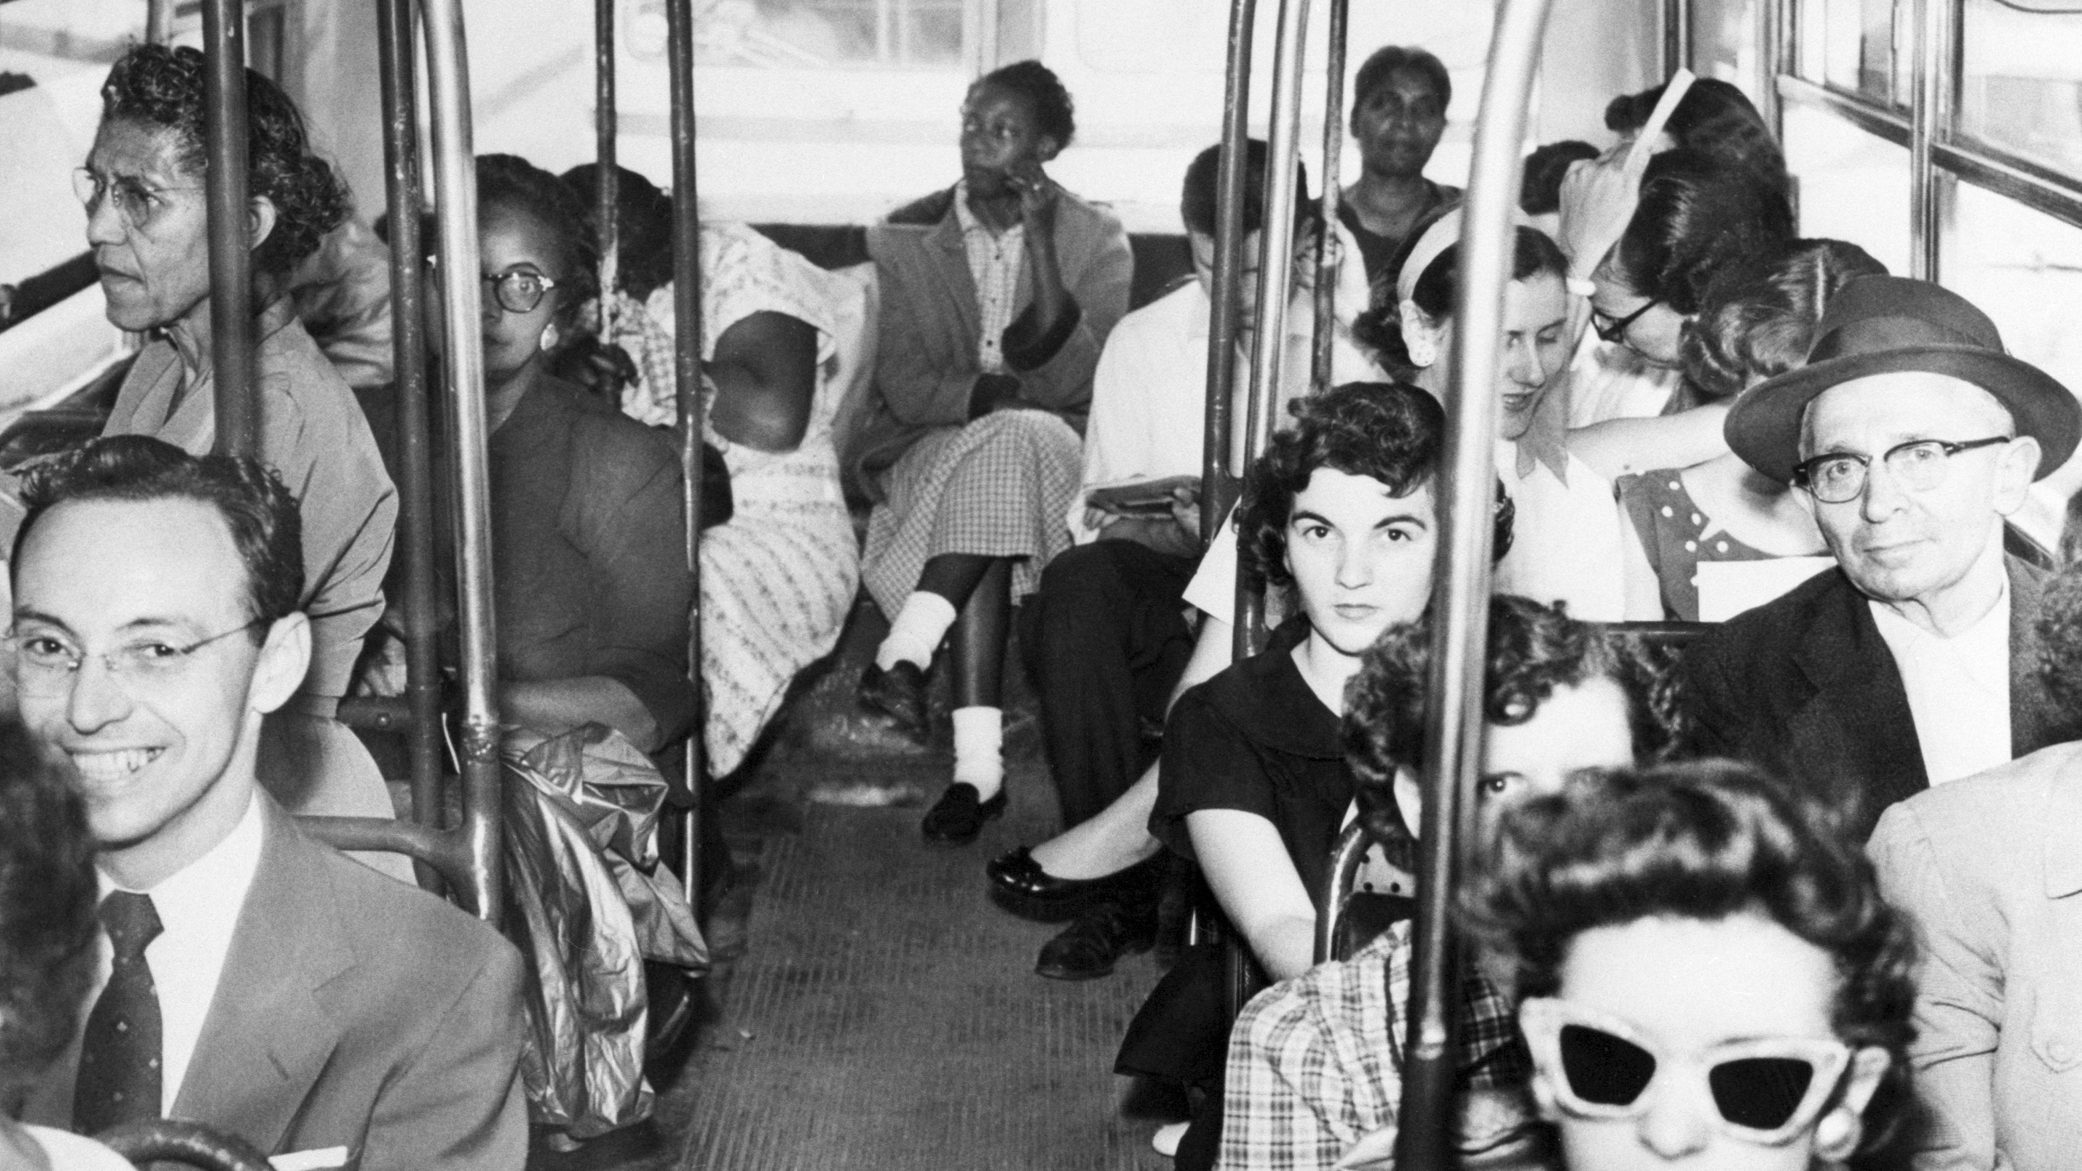 Riders continue to sit in segregated sections, due in part to pressure from white patrons, in this 1956 photo in Texas even as courts ruled to desegregate buses.